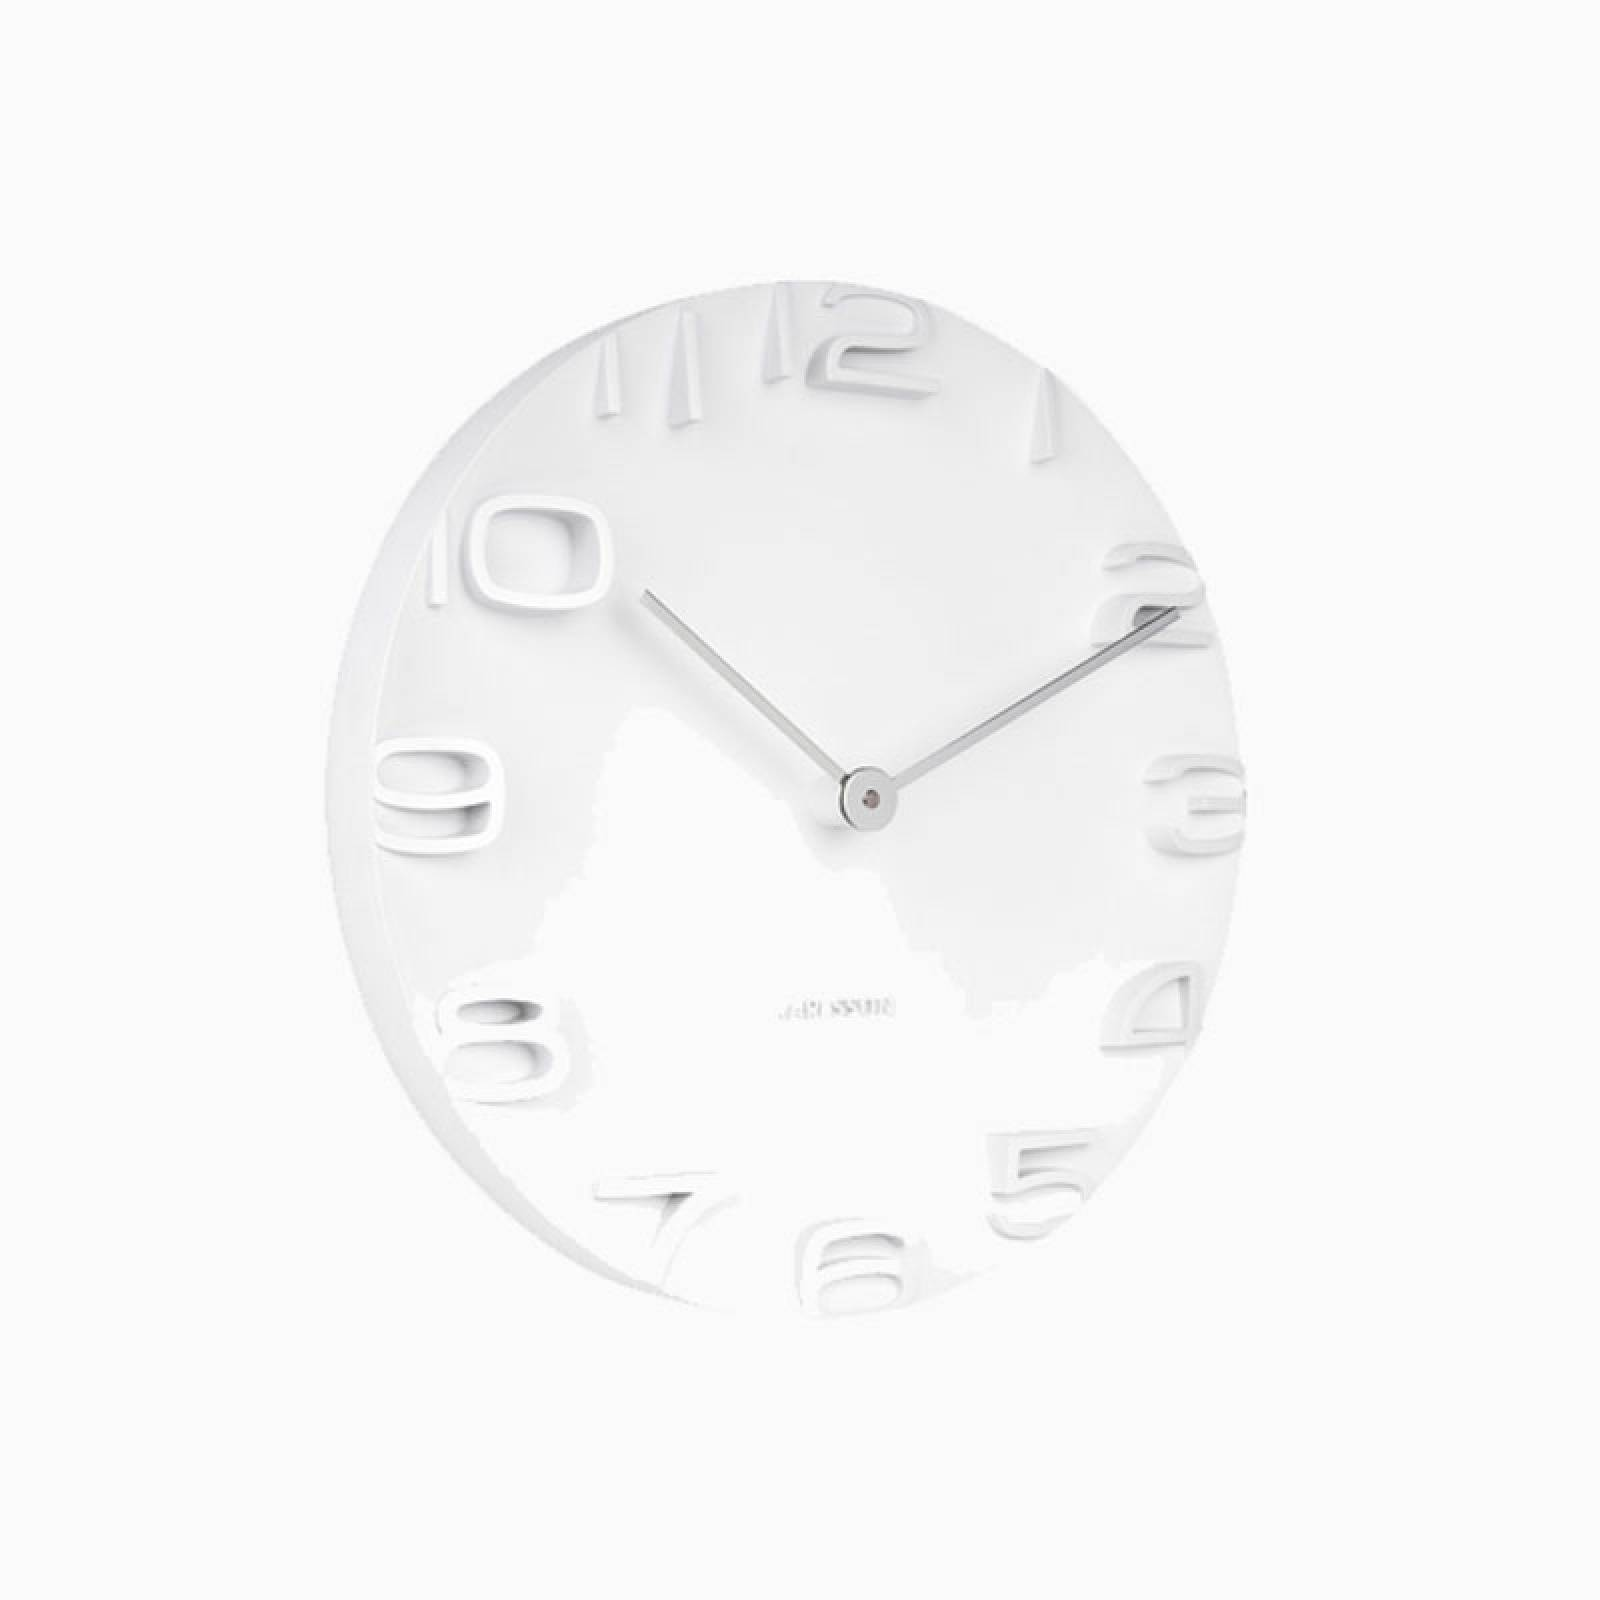 On The Edge Wall Clock In White thumbnails